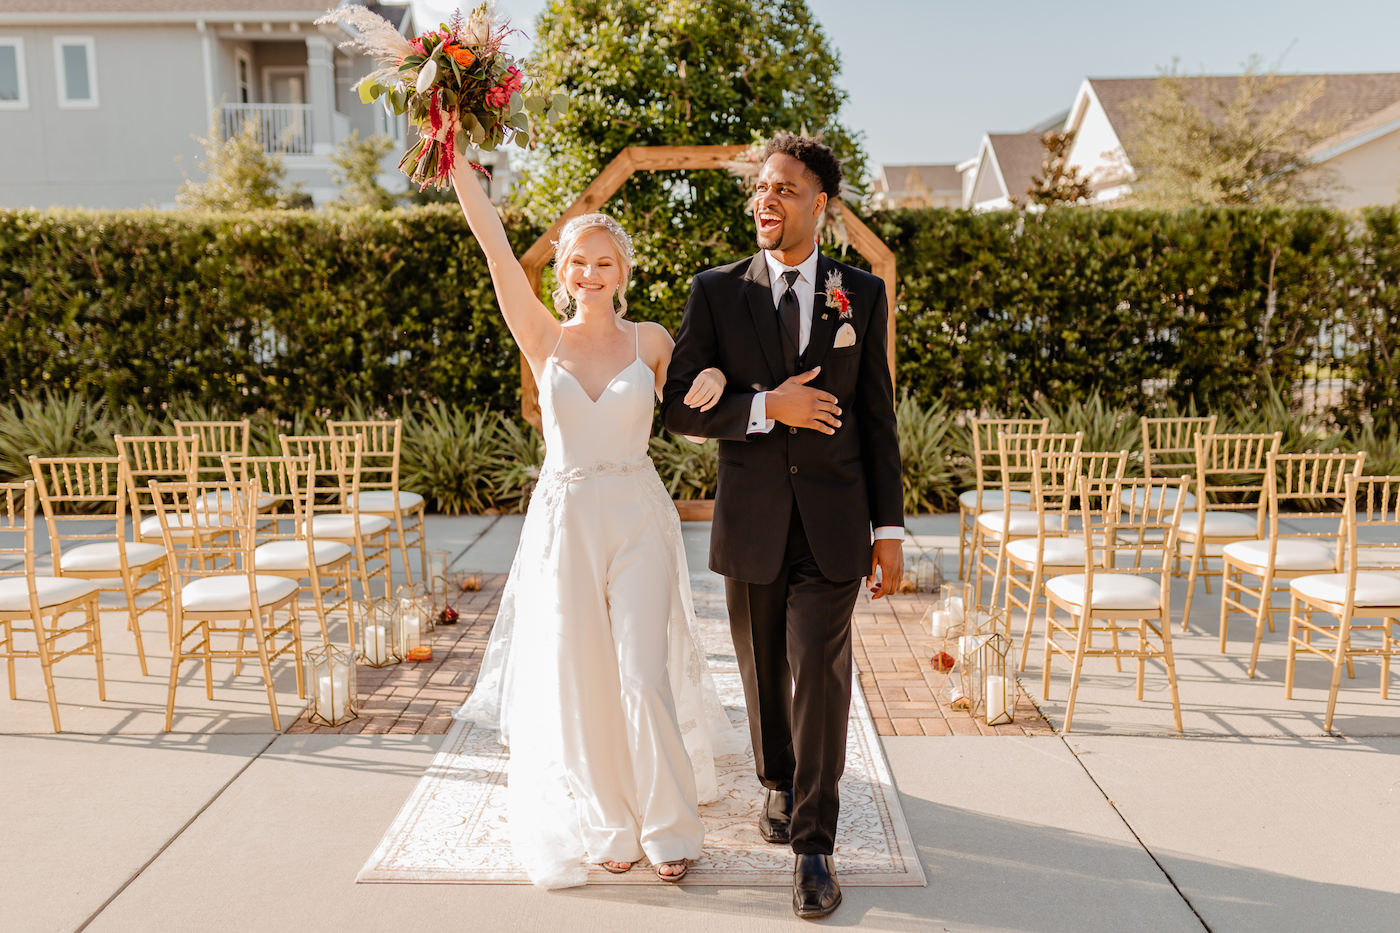 Boho Glam Wedding Ceremony Backdrop with Wood Geometric Arch and Gold Chiavari Chairs and Rug Runner | Colorful Orange Pink and Red Bouquet with Pampas Grass | Tampa Wedding Florist Monarch Events and Designs | Embroidered Floral Lace V Neck Bridal Gown and Groom in Classic Black Tux